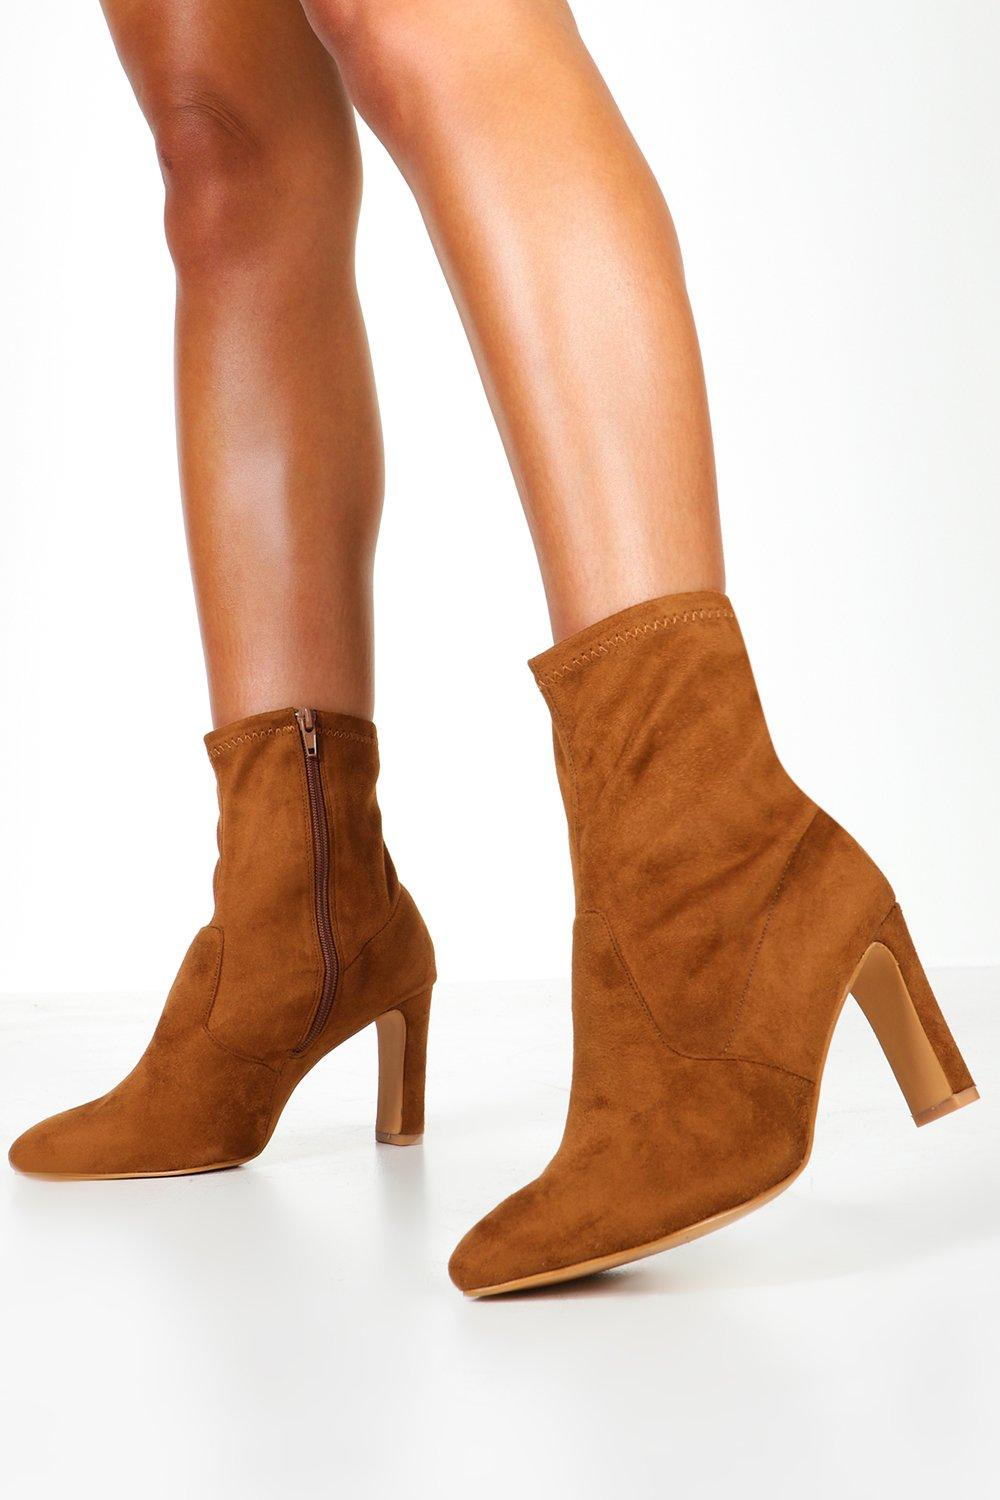 Retro Vintage Style Wide Shoes Extra Wide Fit Flat Heel Sock Boots $41.00 AT vintagedancer.com